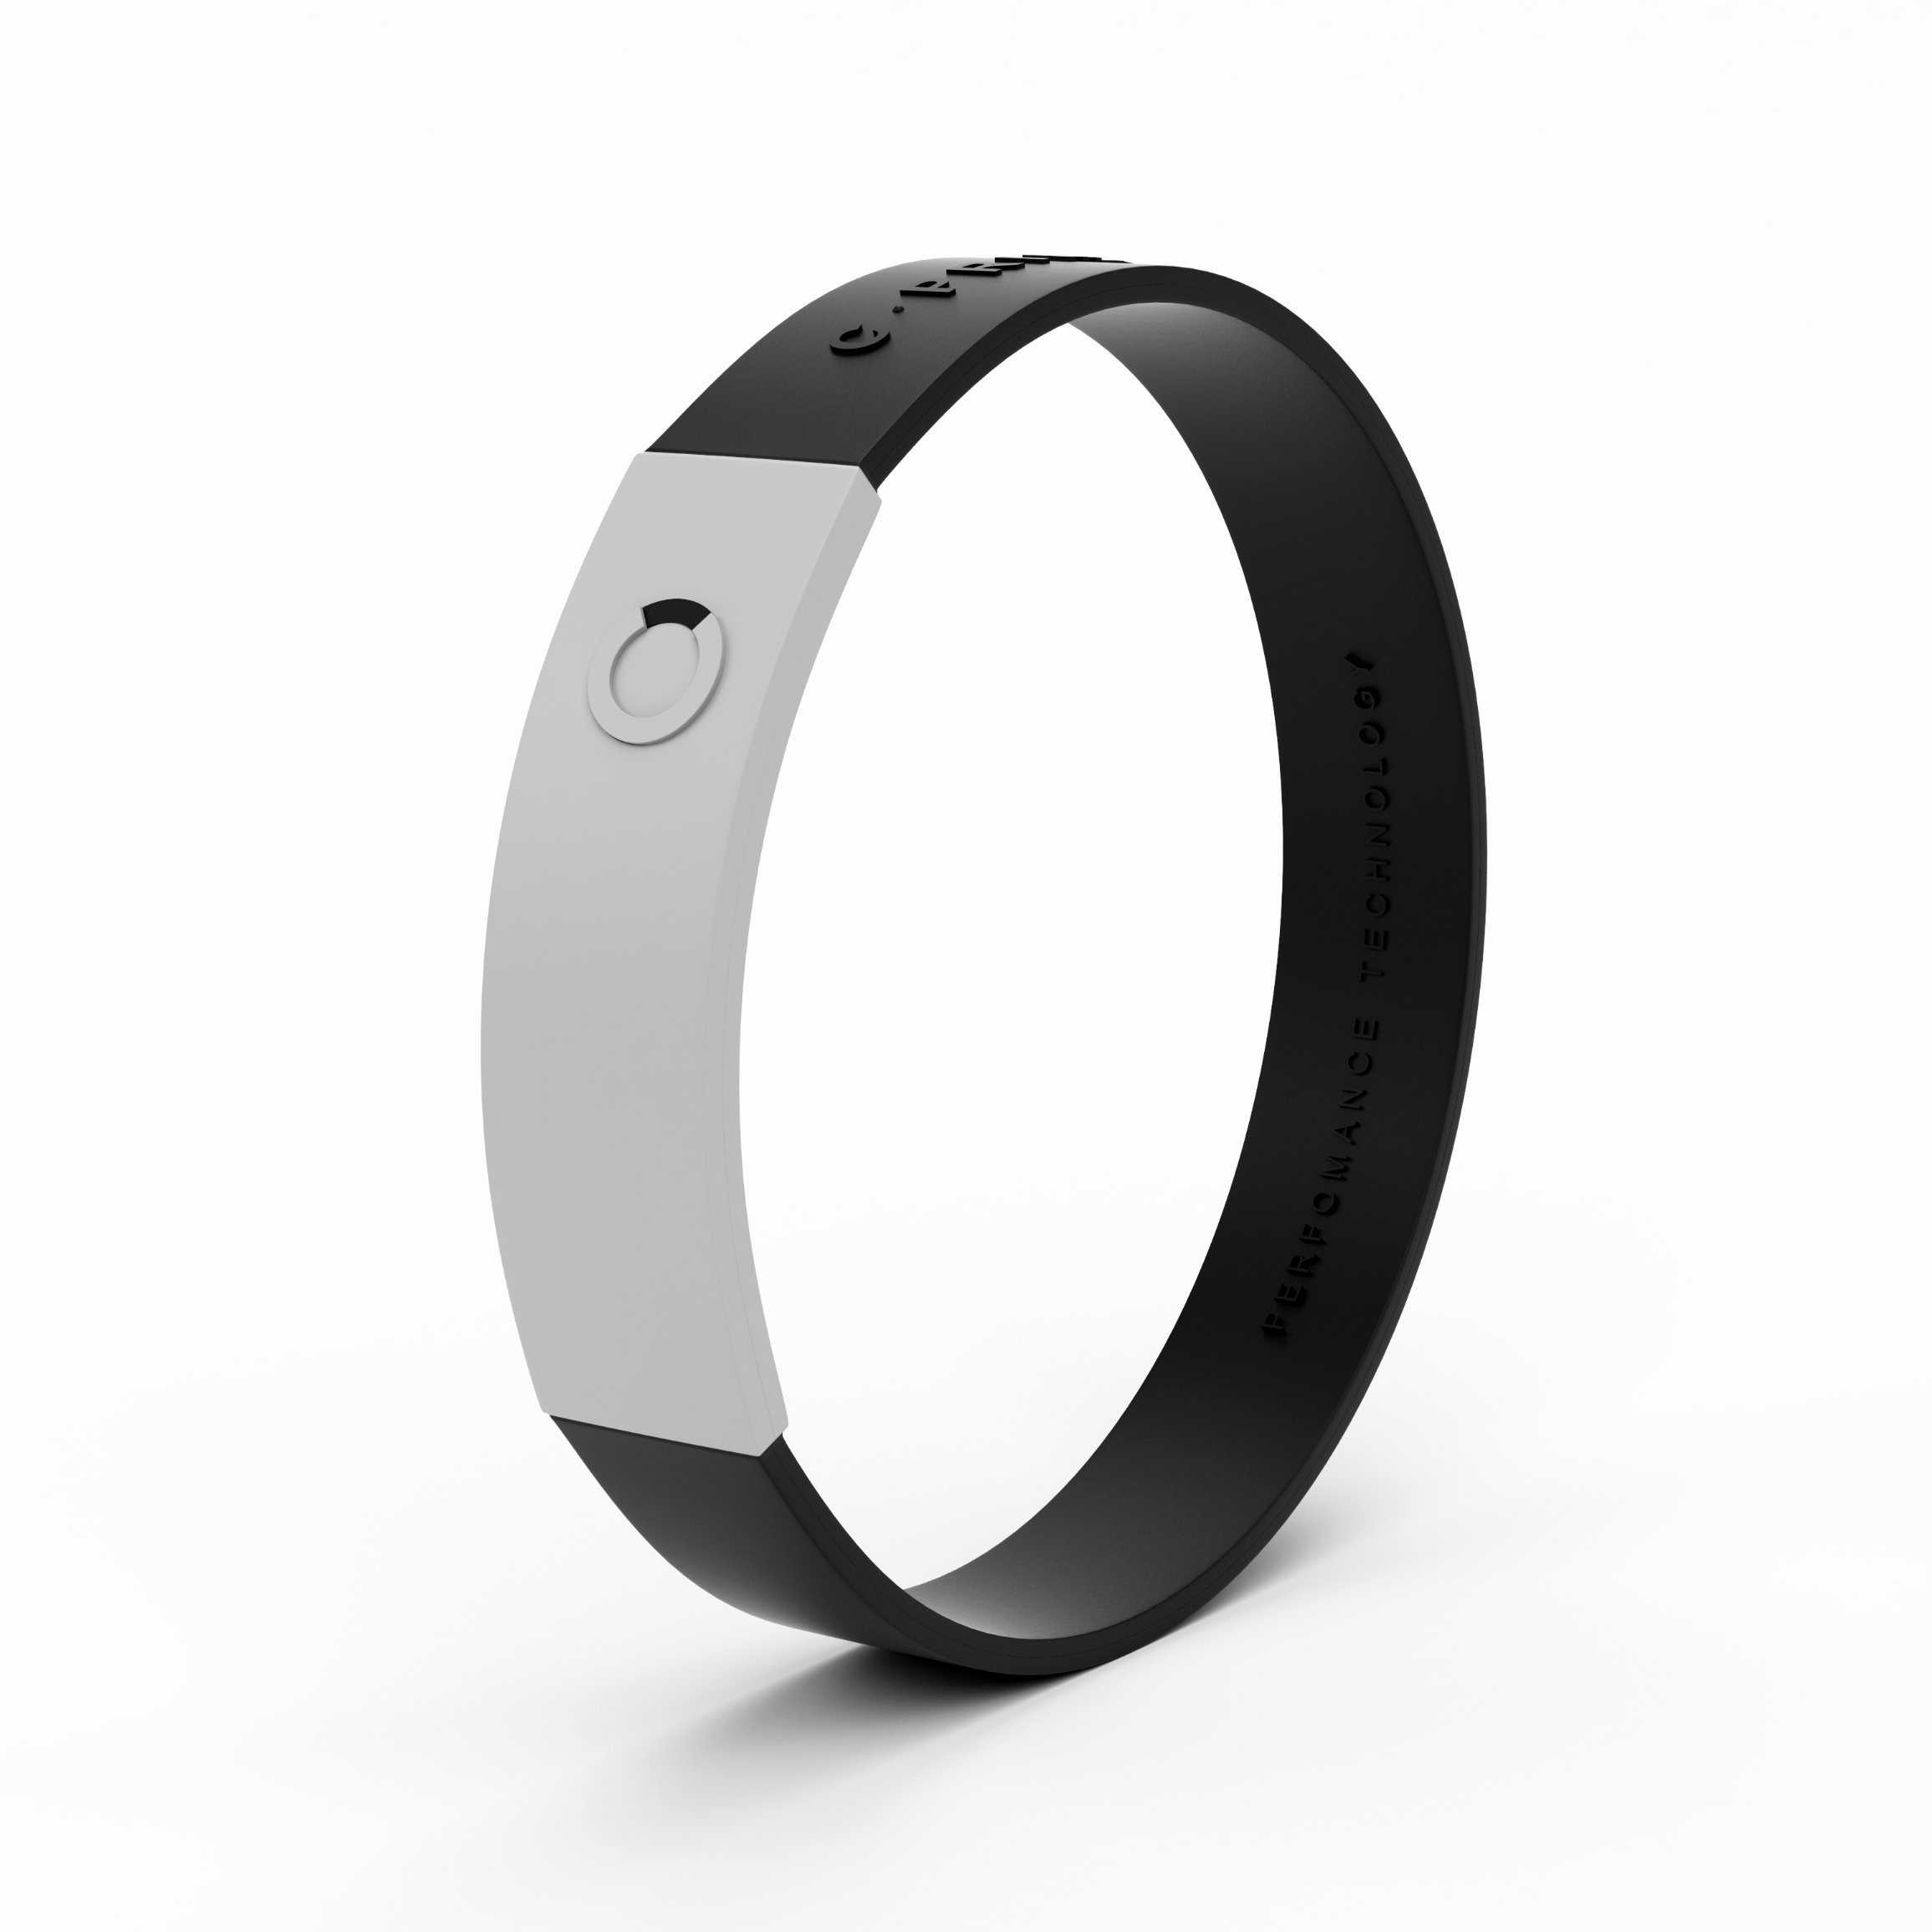 Fashion Silicone Cprime Neo Bracelet Performance Sport Wristbands